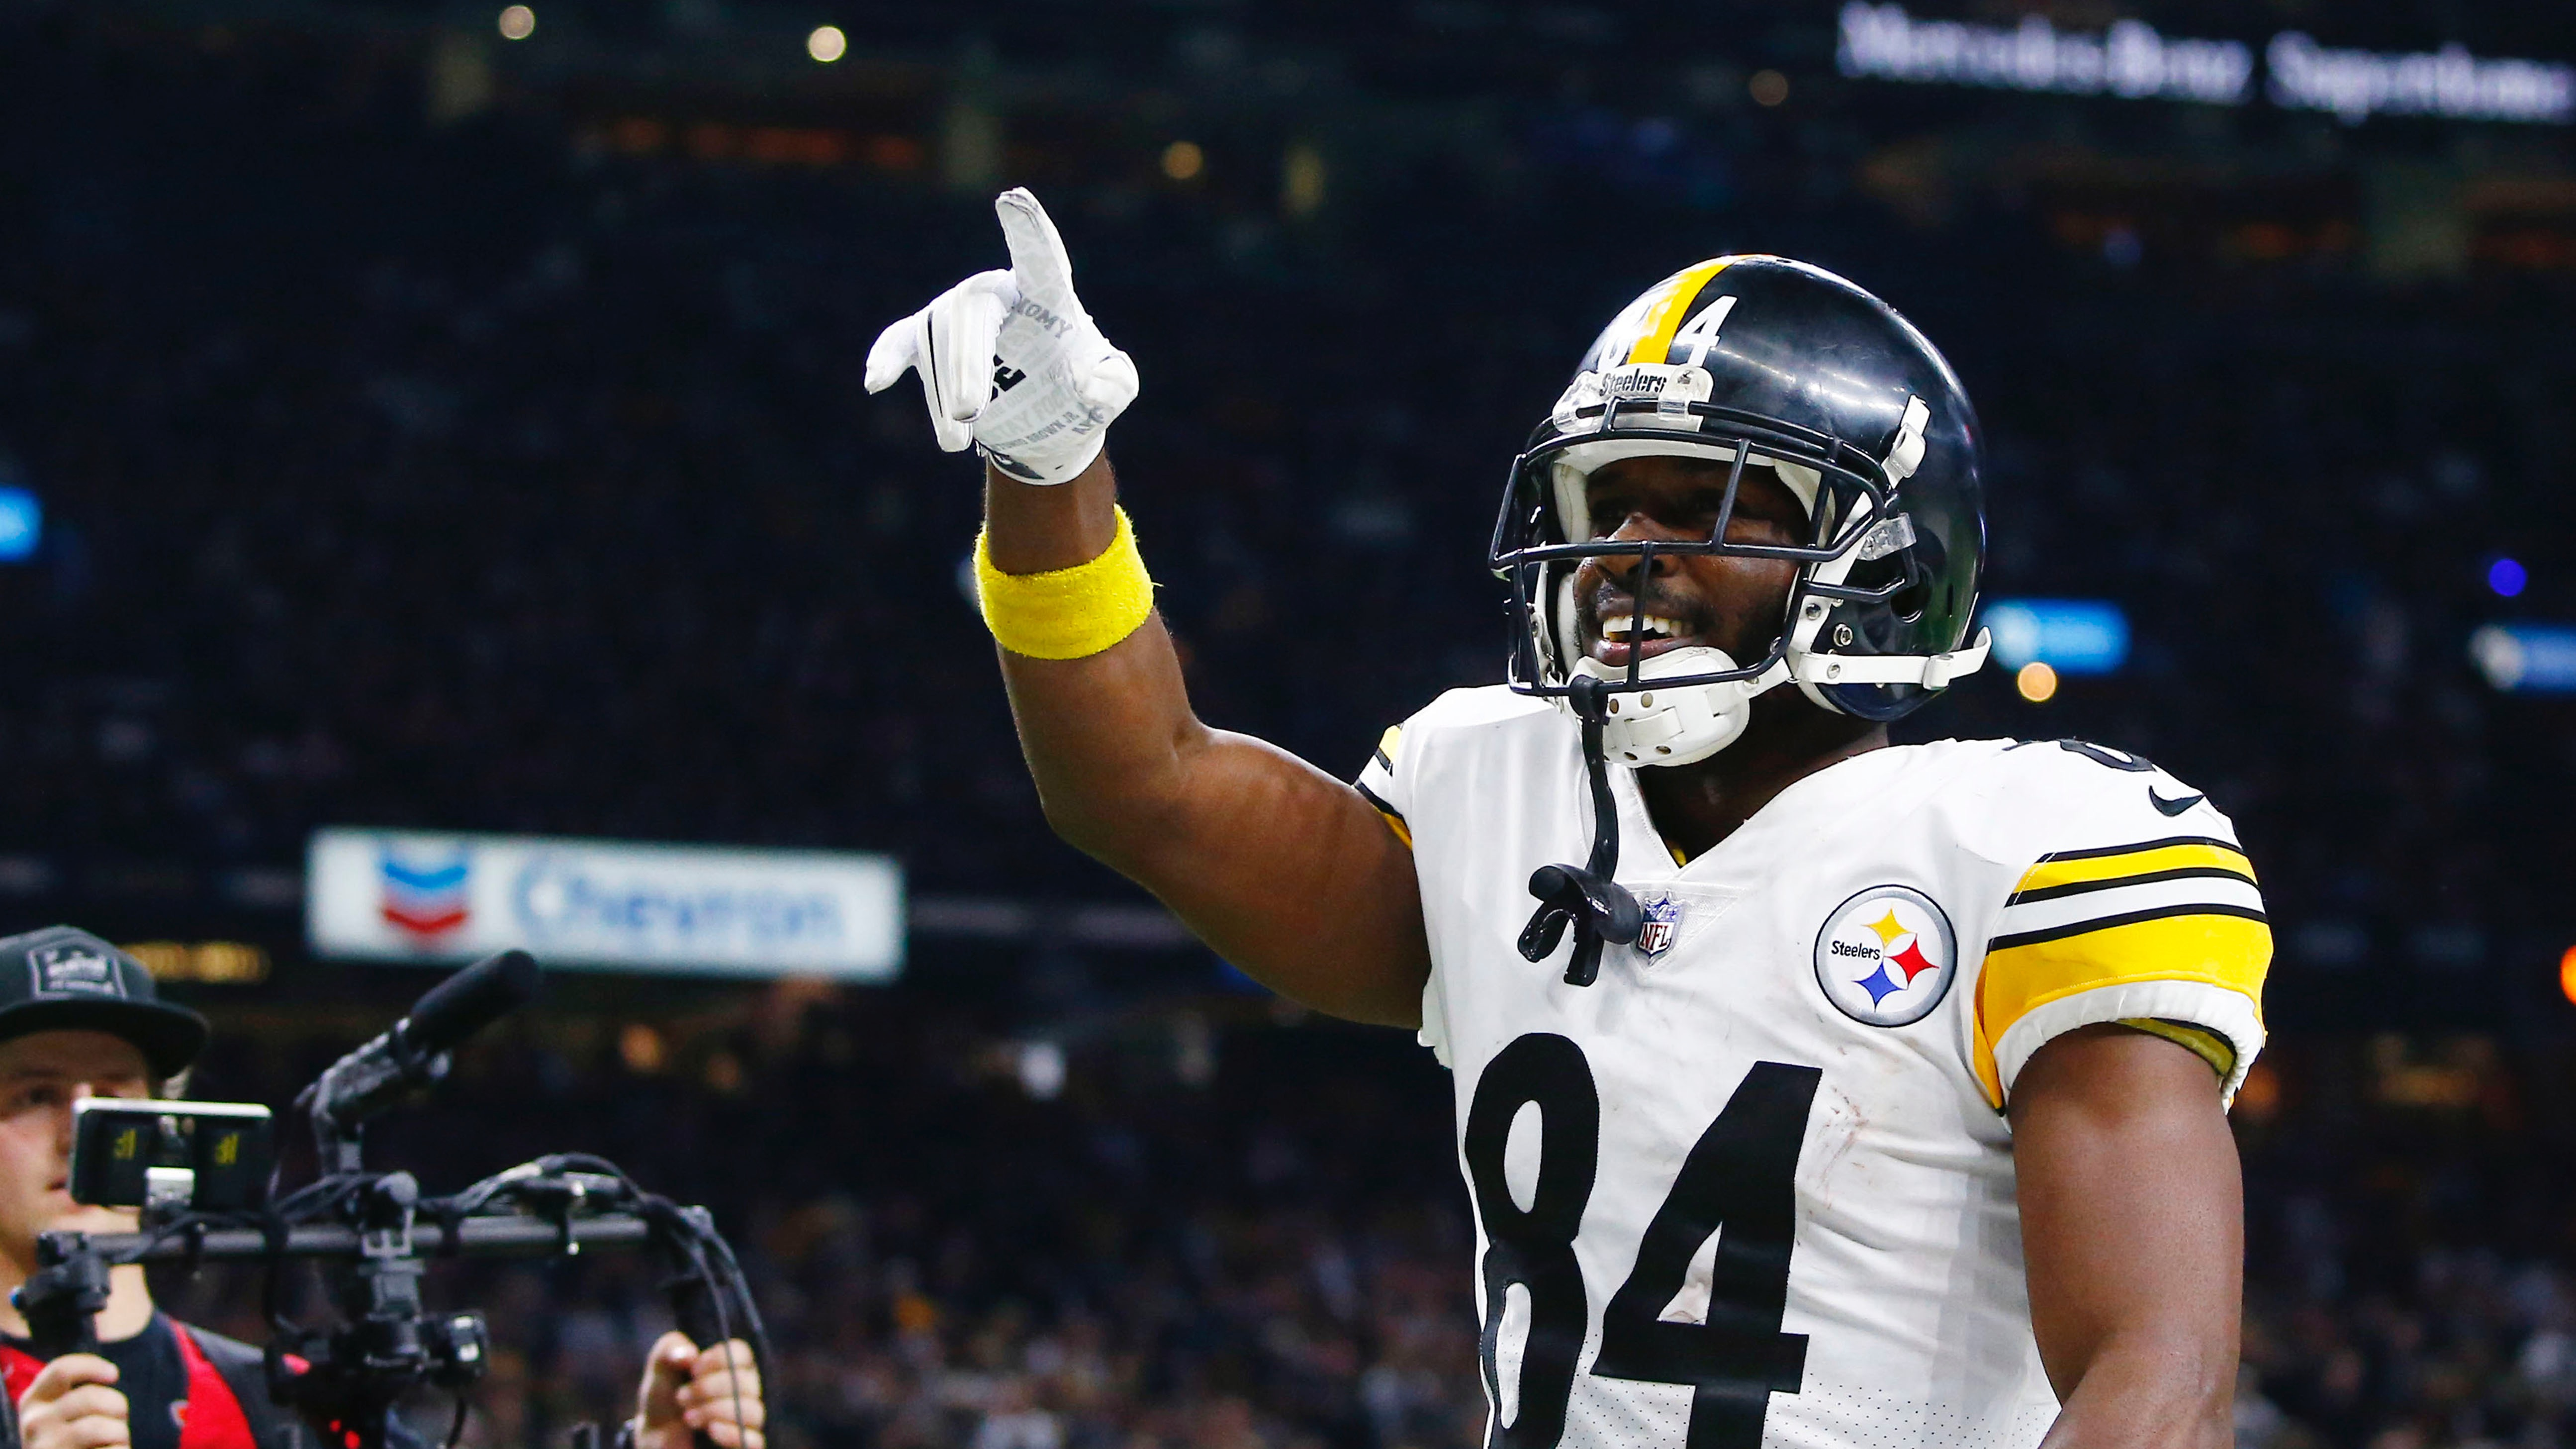 d77a8fed5 Antonio Brown not favored to land in NFC North